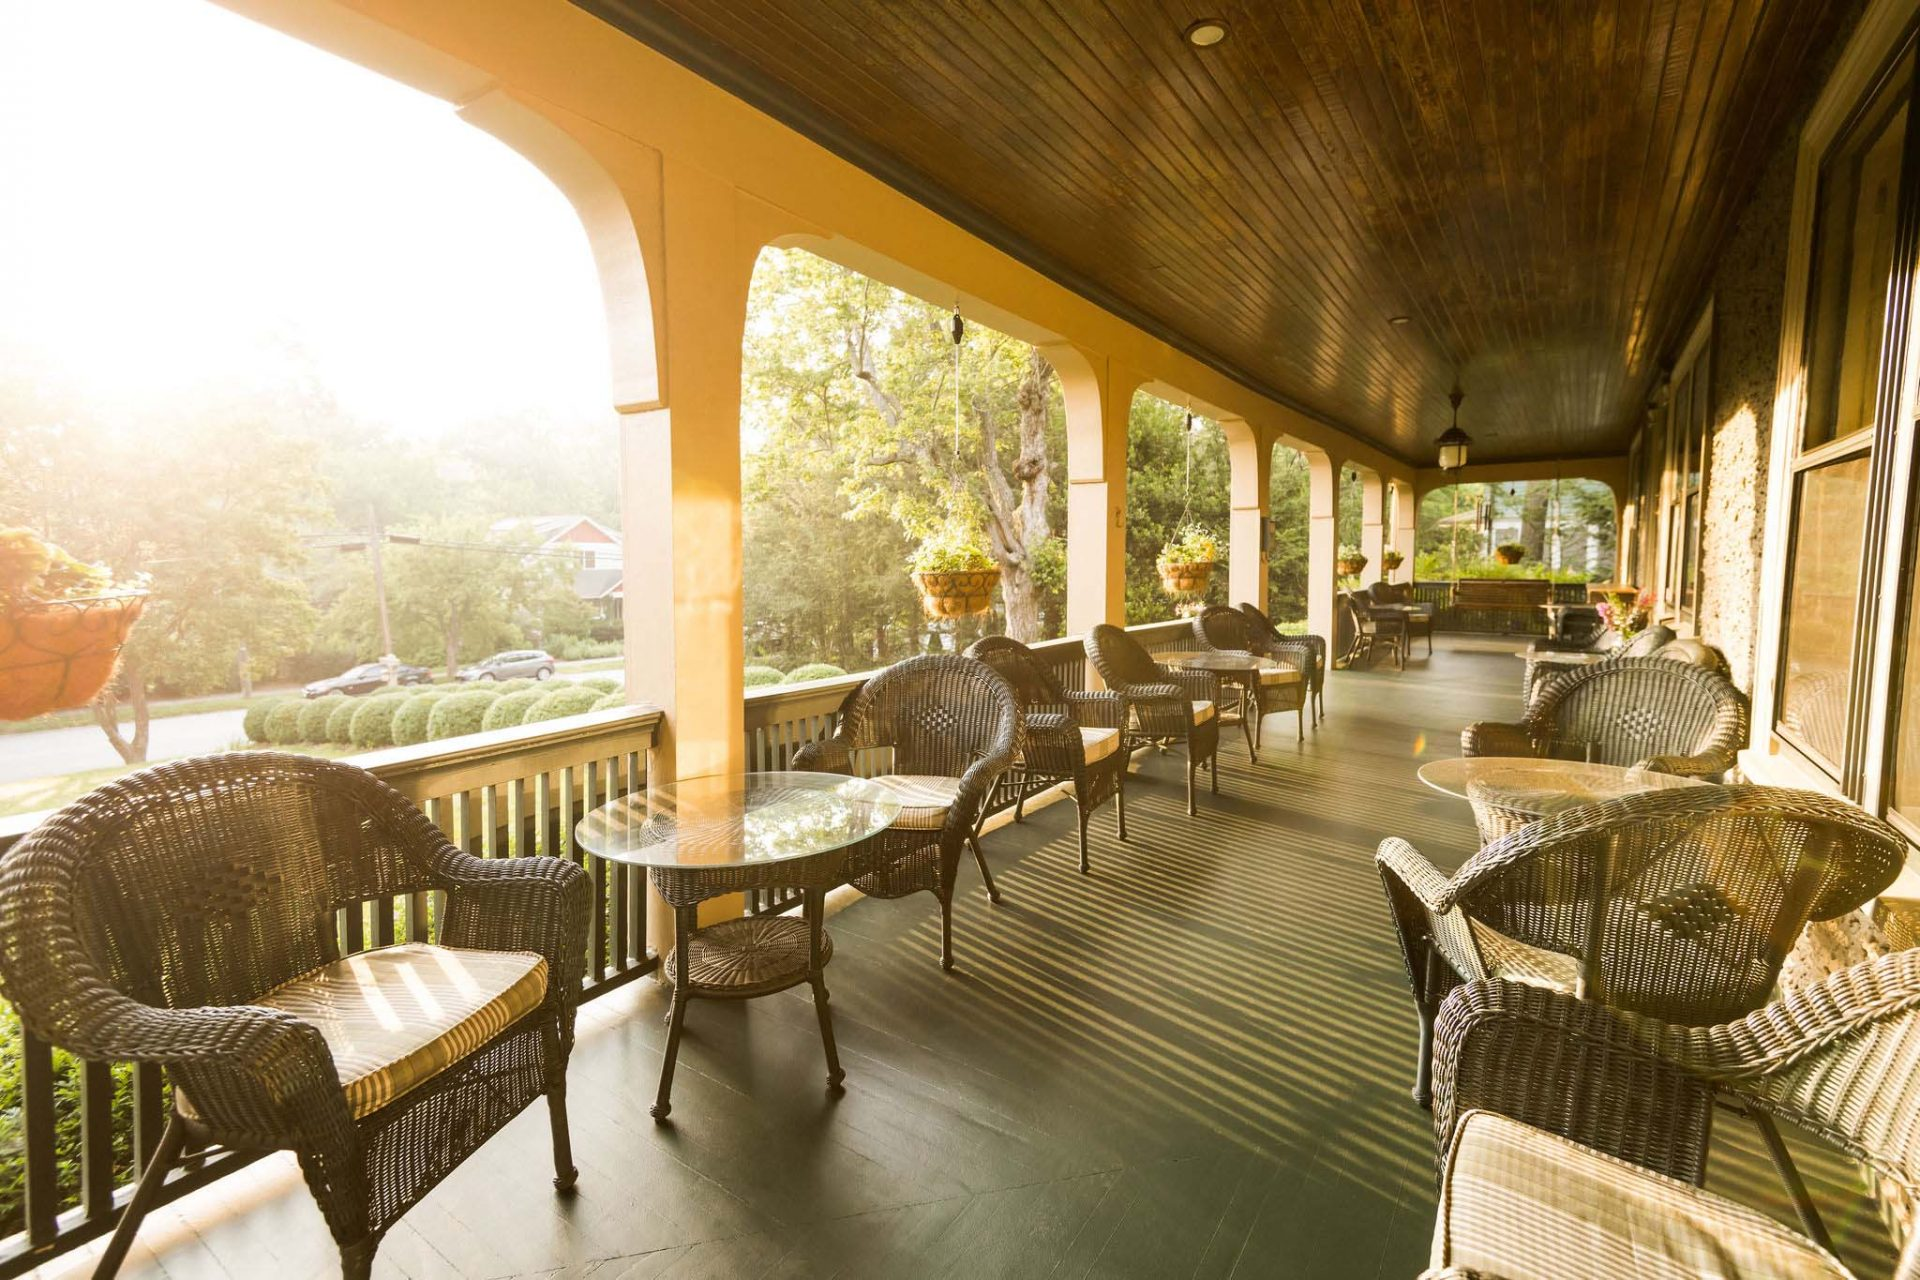 The front porch of the Inn lit by warm, afternoon sun. Two rows of tables and rattan chairs with planters hanging from the porch's arches.